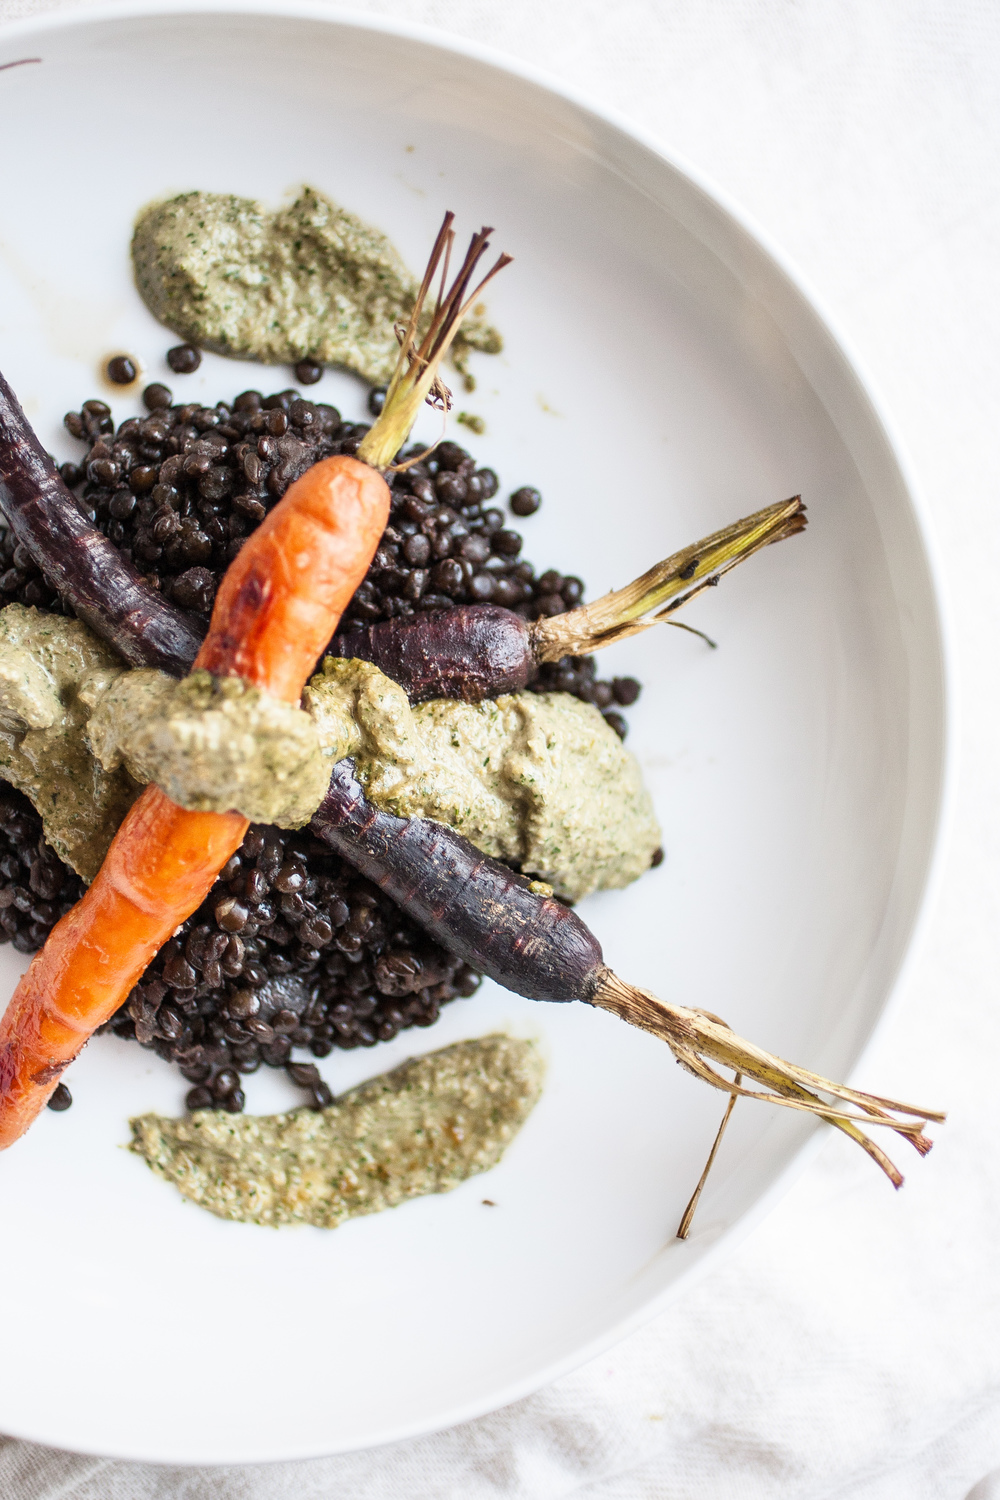 Produce On Parade - Roasted Carrots & Beluga Lentils with Carrot Greens Pesto - Roasted carrots rest atop beluga lentils, dressed with a fresh, carrot greens pesto. This exquisite dish is done in under an hour and will definitely impress.